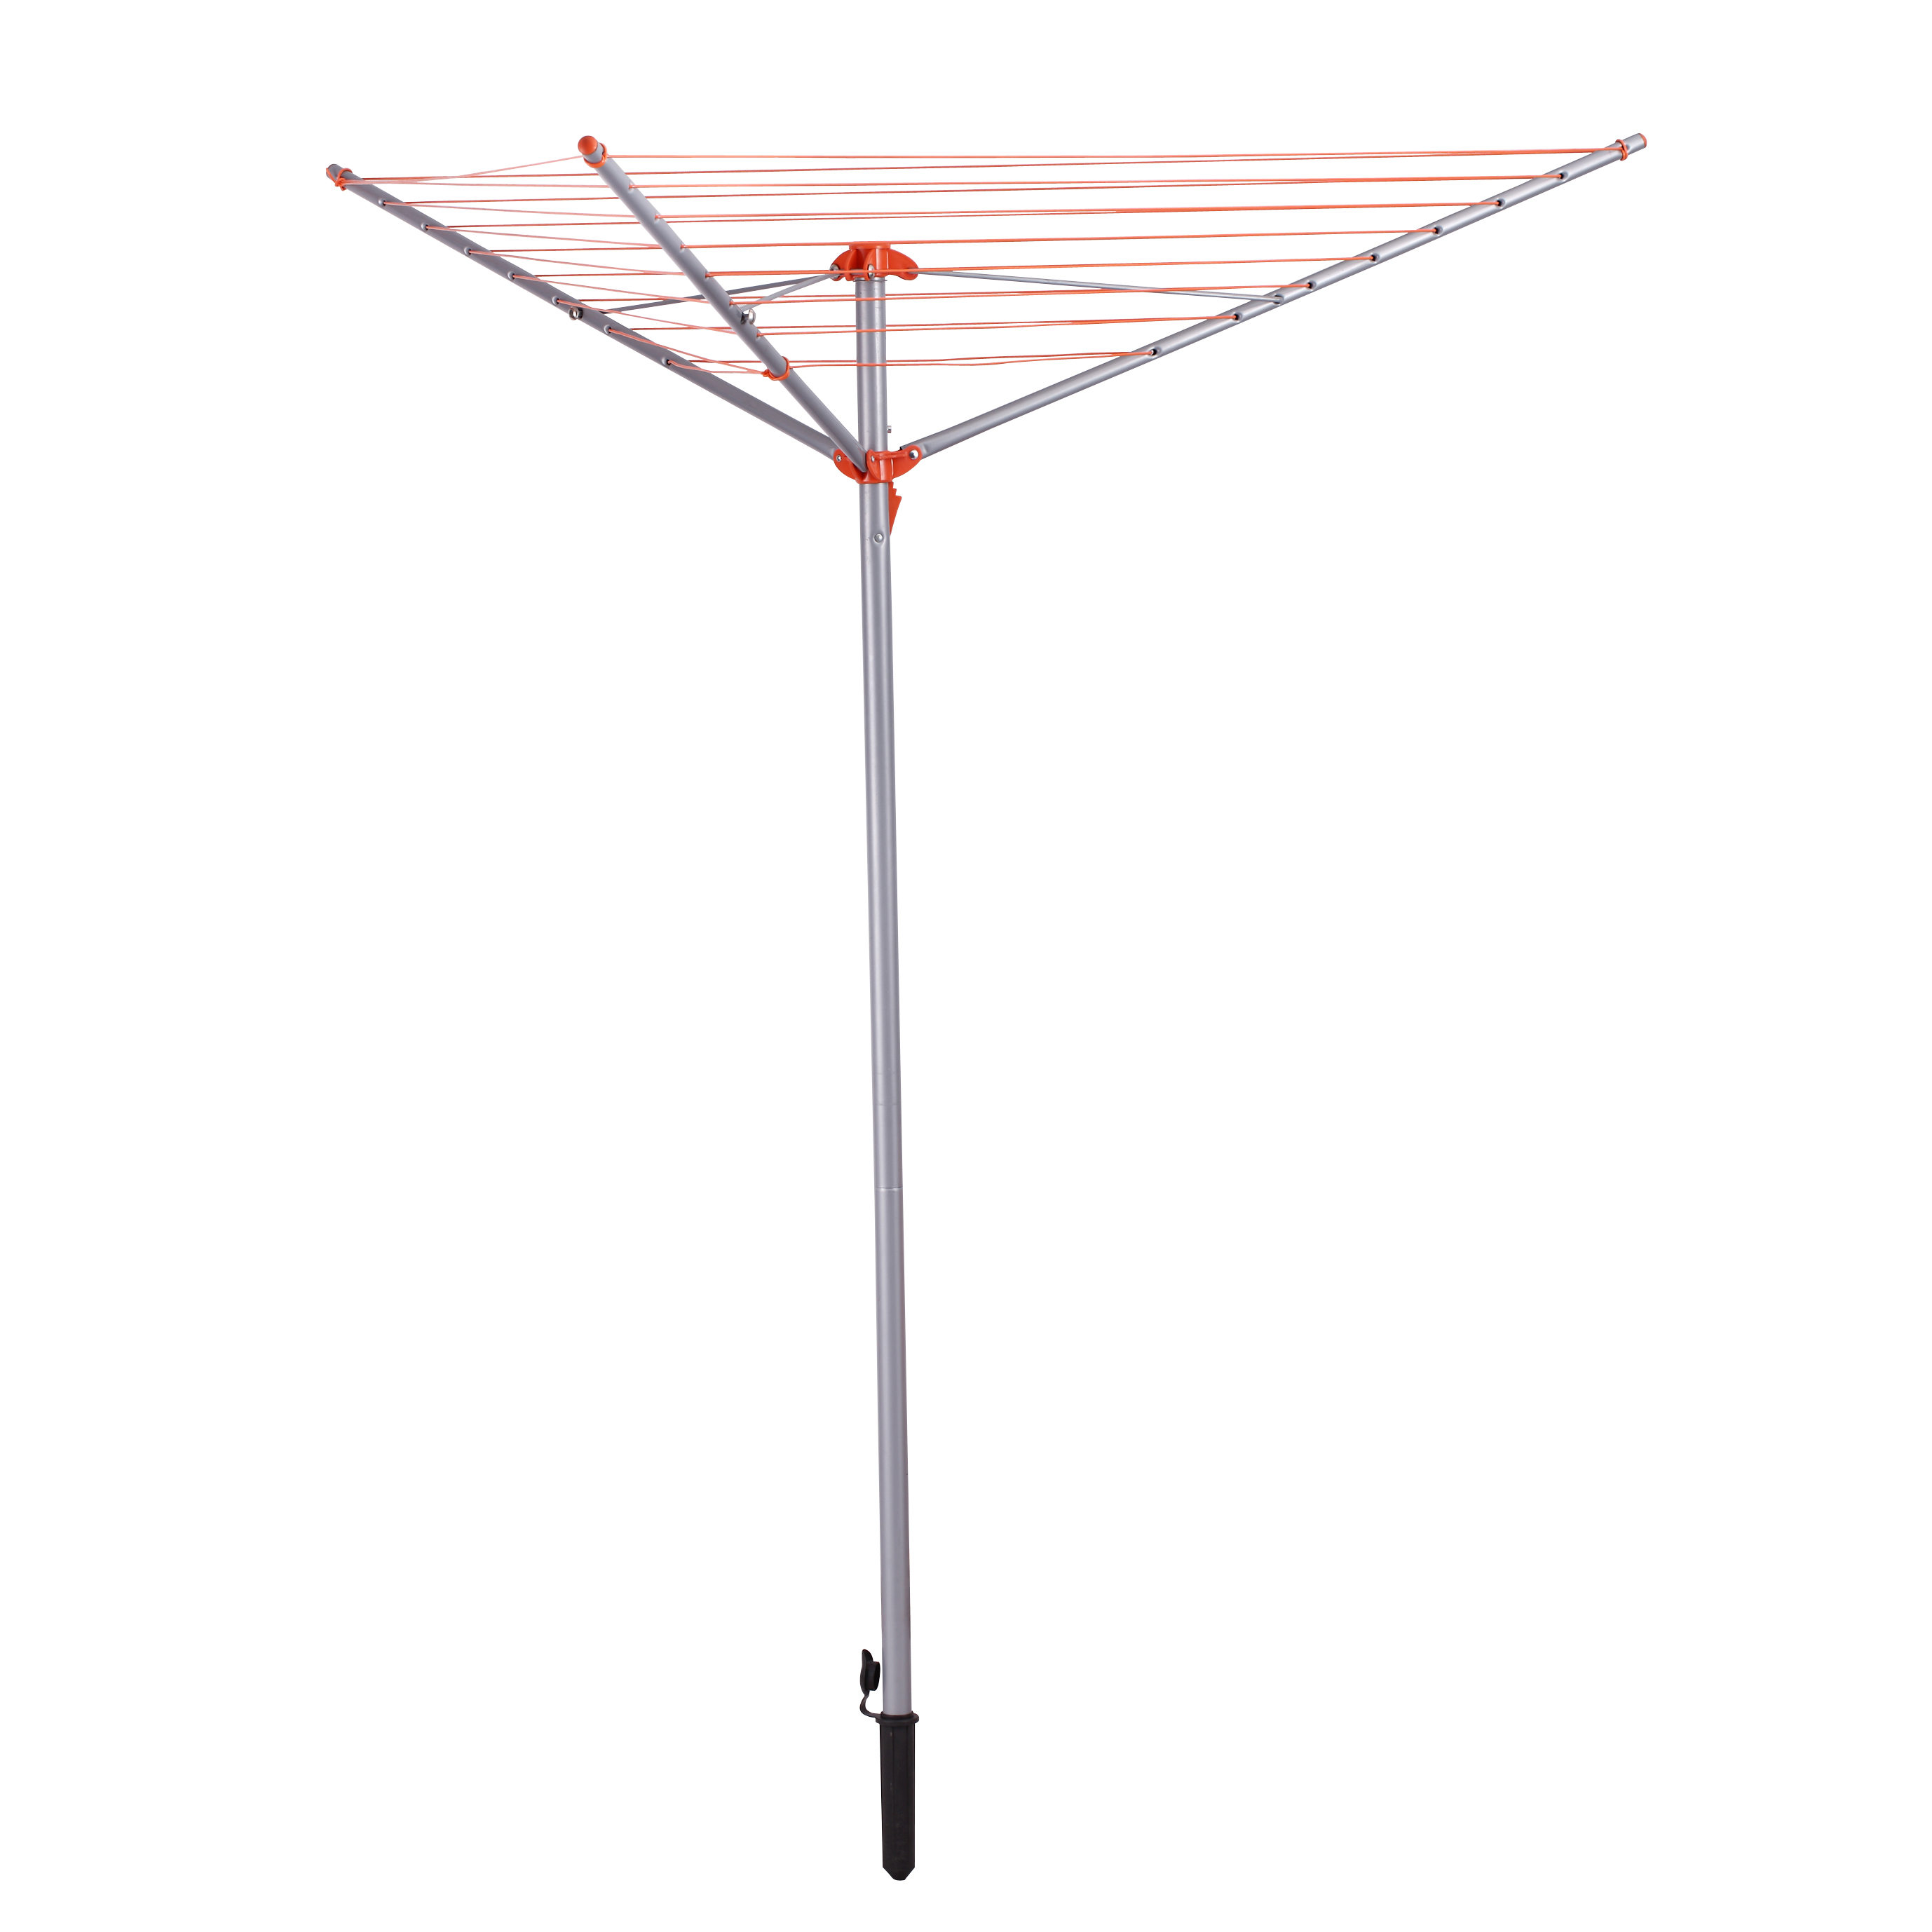 3 Arm 26m Rotary Airer Clothes Dryer Outdoor Laundry